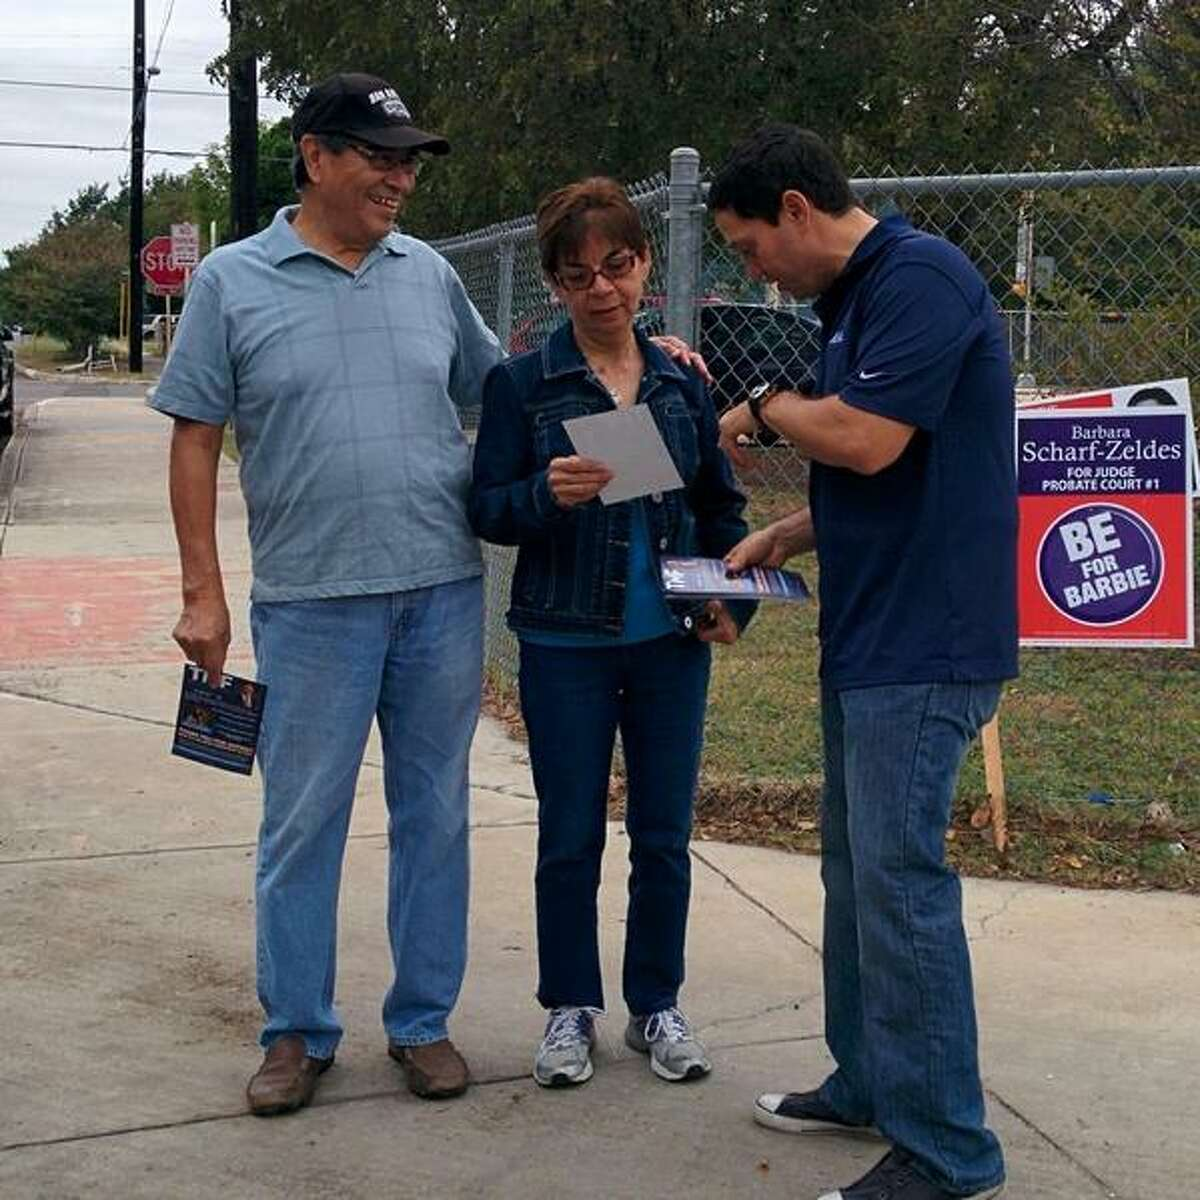 Trey Martinez Fischer has no opponent but he spent part of the morning talking to voters outside Woodlawn Elementary.